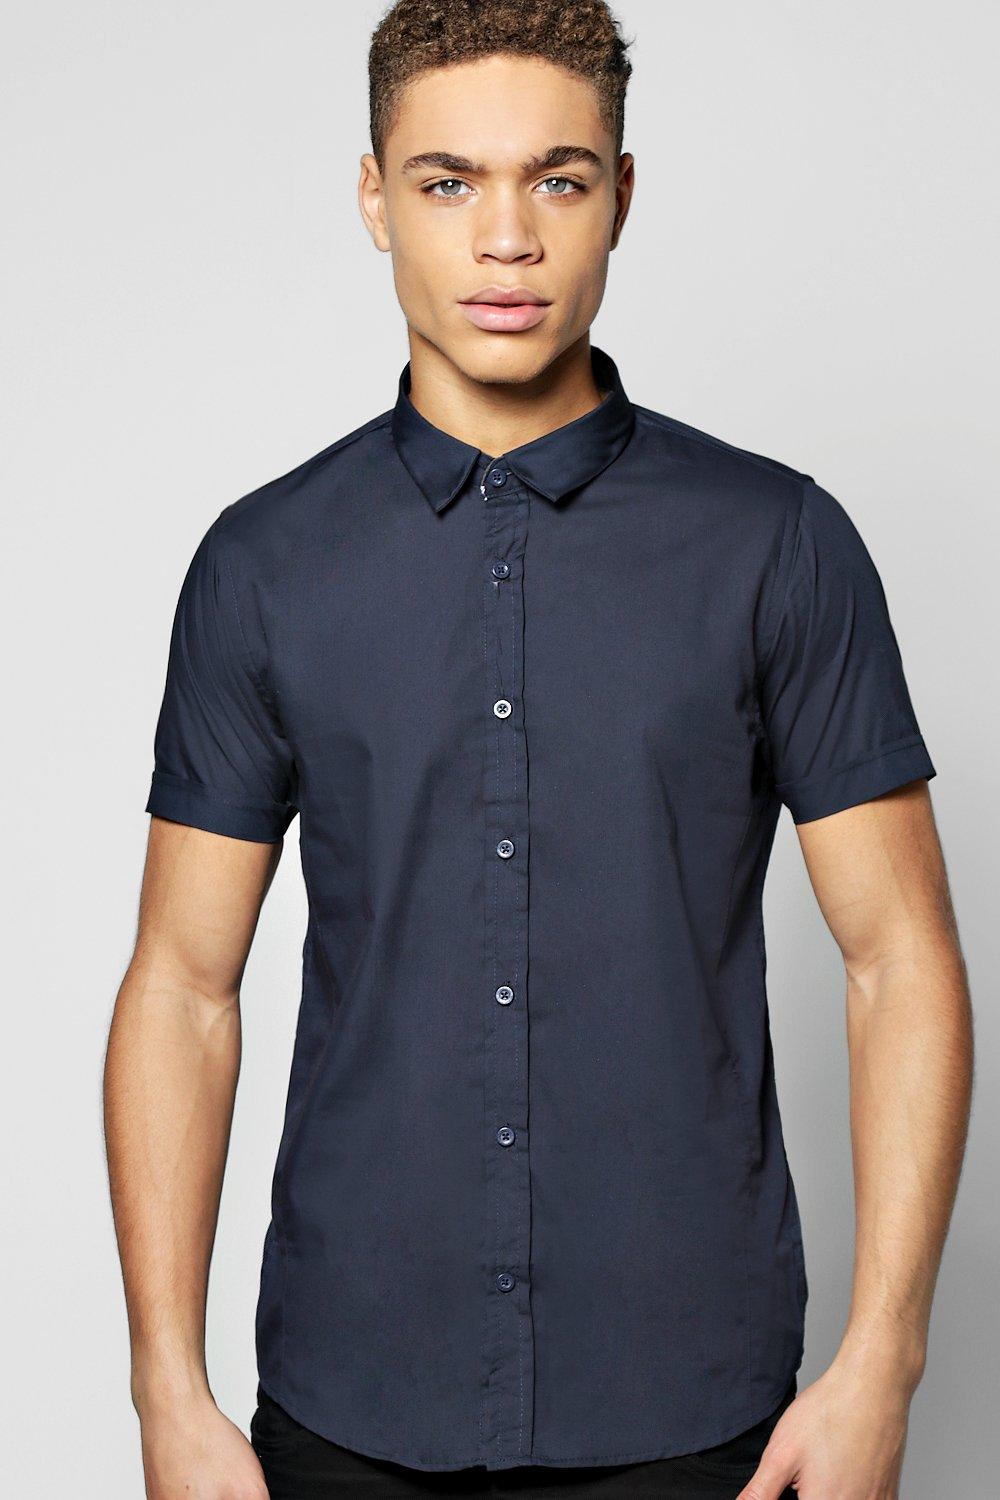 Boohoo mens slim fit short sleeve smart shirt ebay for Mens slim fit short sleeve shirt